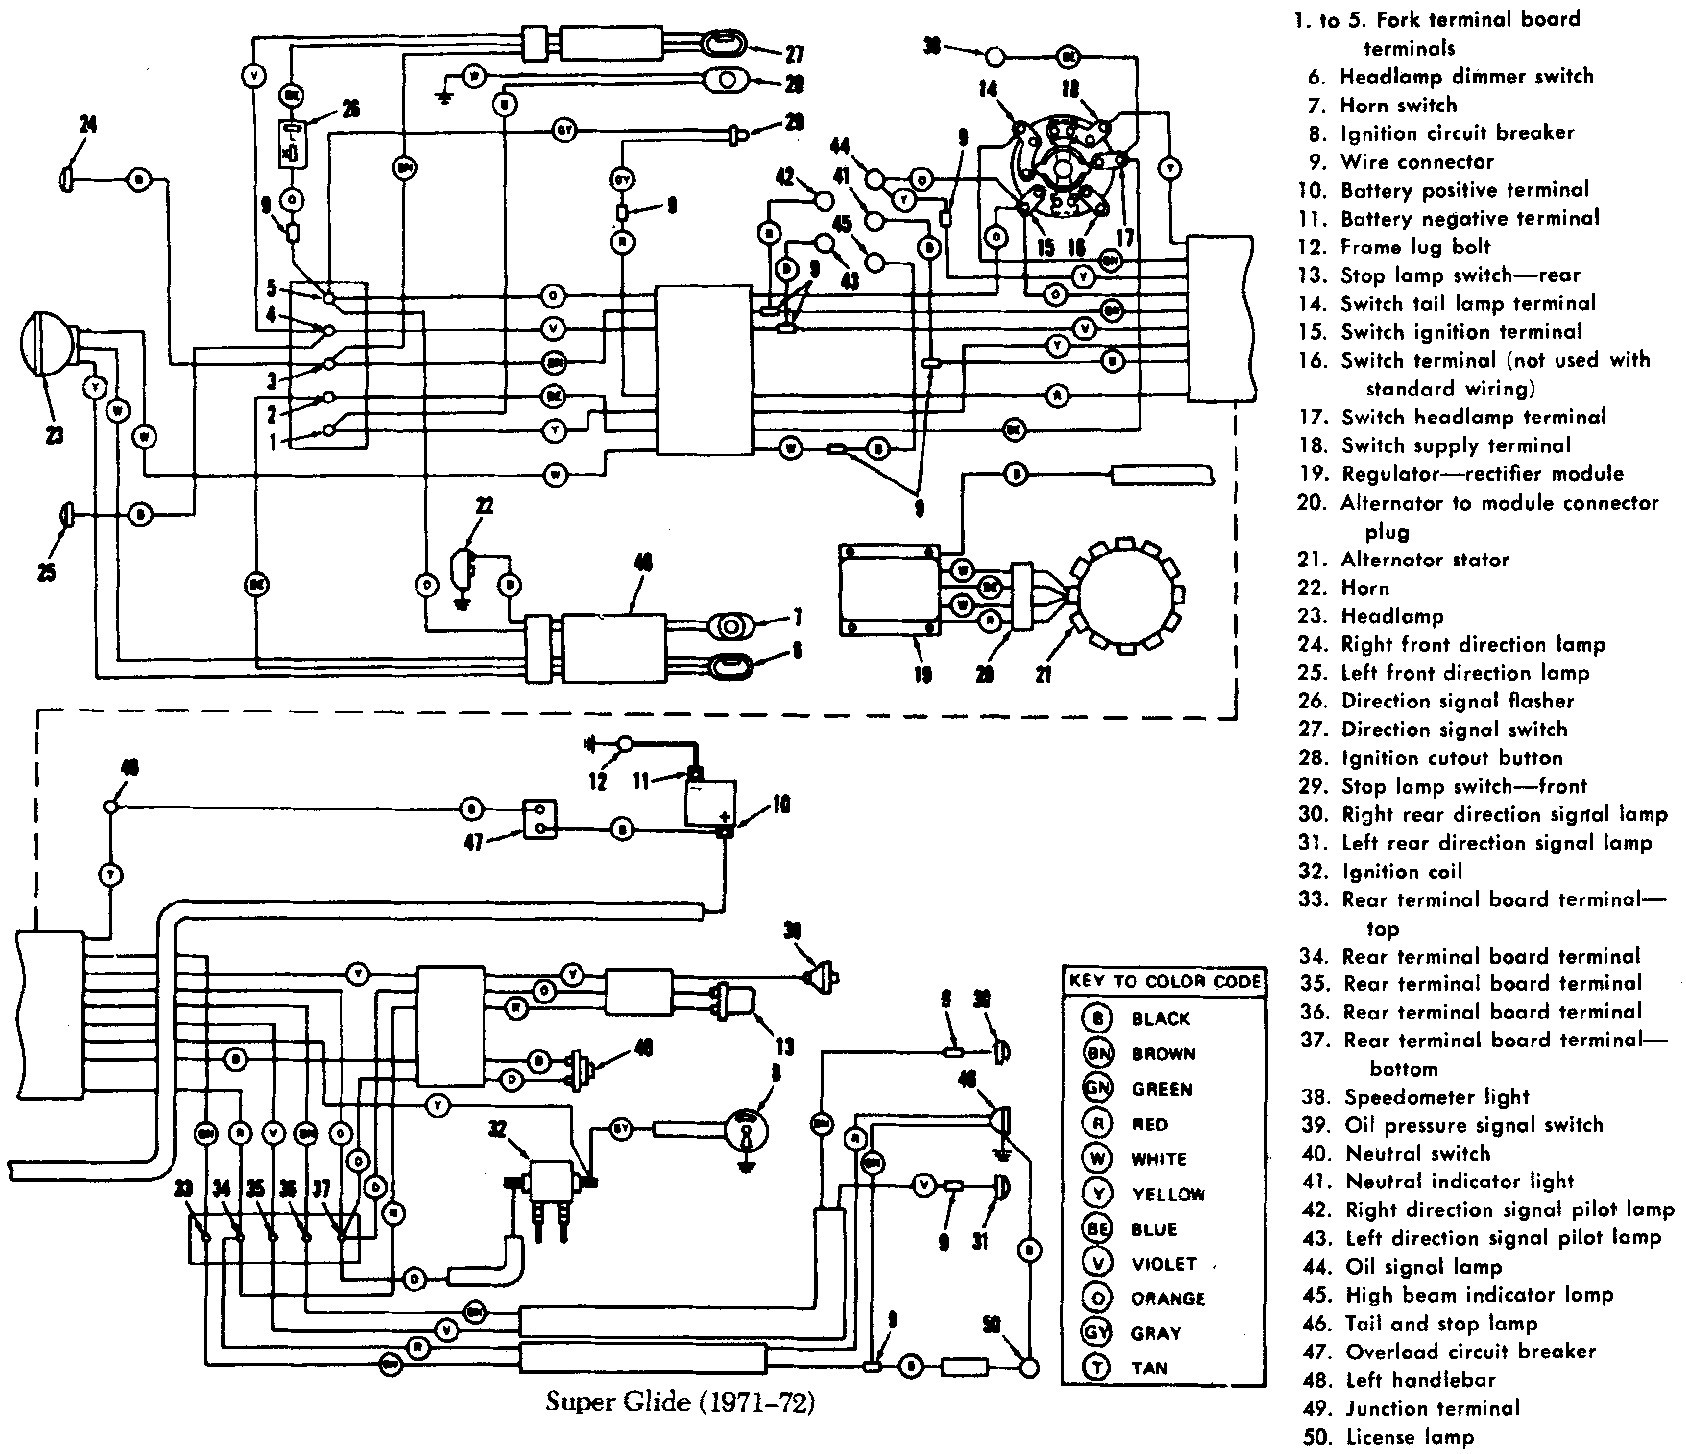 1974 Harley Golf Cart Wiring Diagram - Wiring Diagrams Value on harley fuel lines diagram, harley throttle cable diagram, harley softail wiring harness, harley evo diagram, harley wiring color codes, harley fuel pump diagram, harley generator diagram, harley fuse diagram, harley magneto diagram, harley frame diagram, harley headlight diagram, harley stator diagram, harley panhead wiring, harley rear axle diagram, harley dash wiring, harley shift linkage diagram, harley switch diagram, harley relay diagram, harley wiring tools,